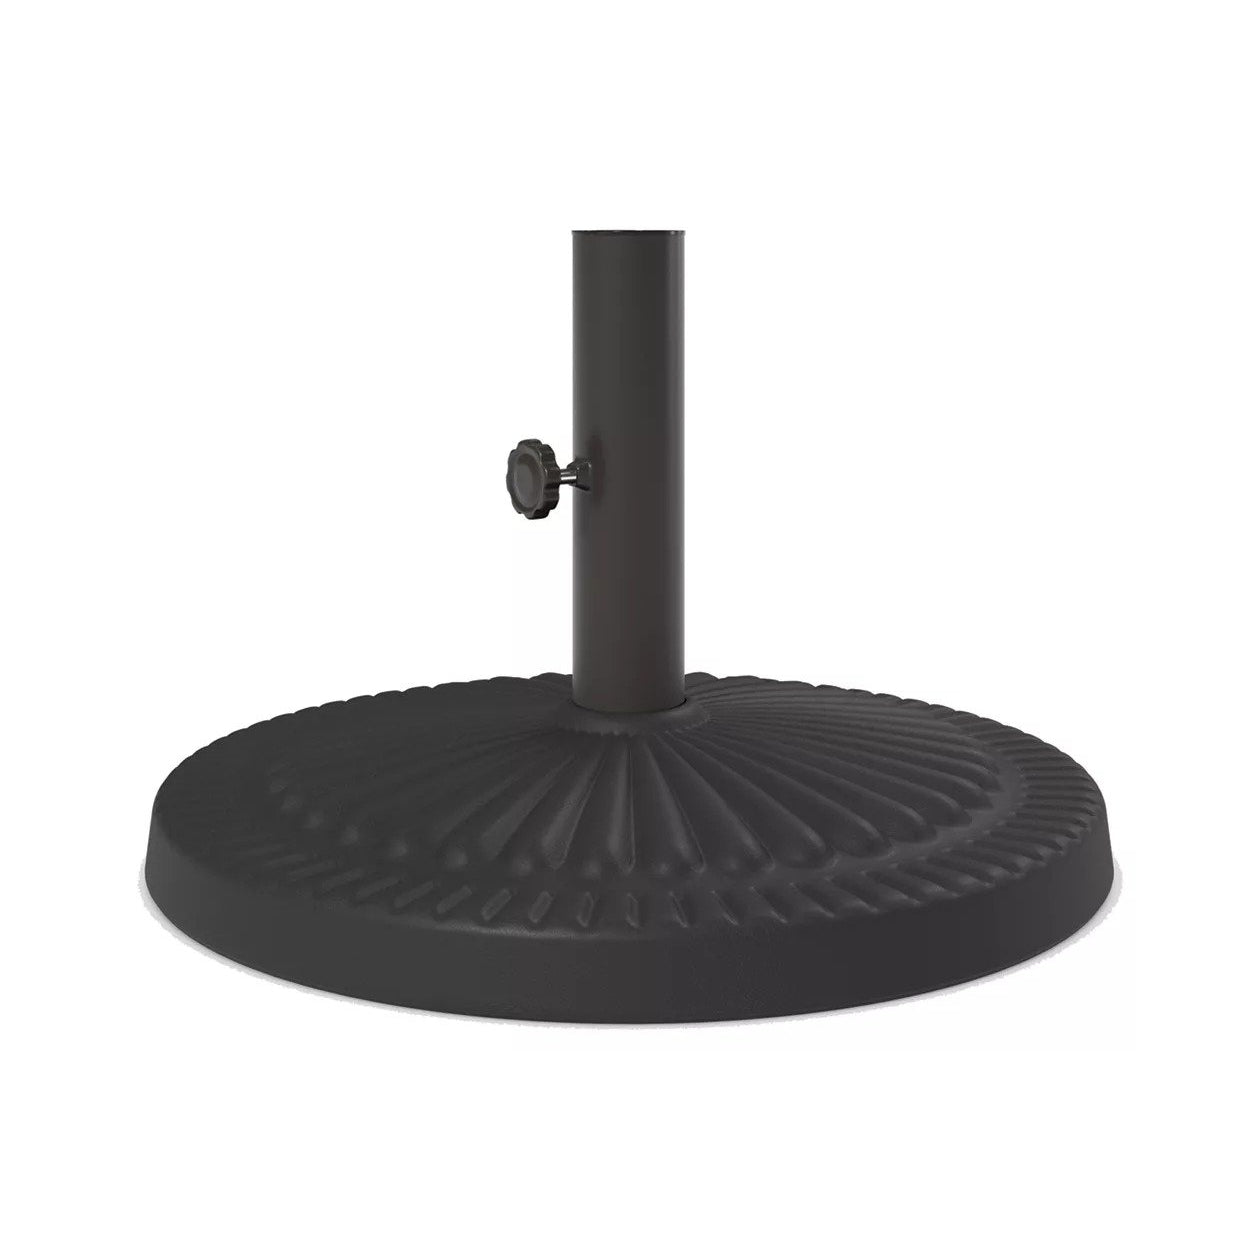 35 lb. Steel Umbrella Base